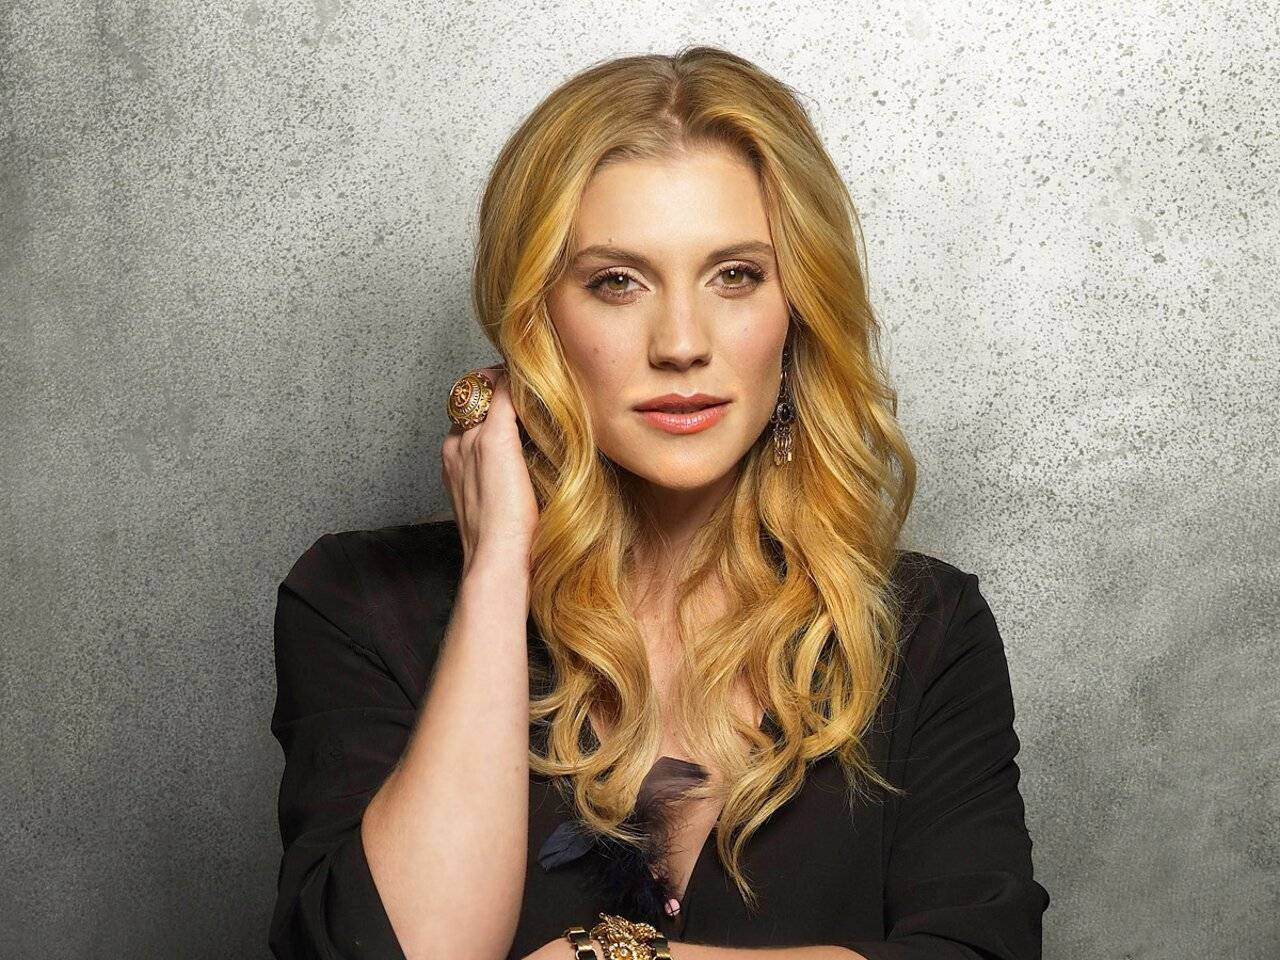 Katee Sackhoff Creating And Starring In New Sci Fi Series